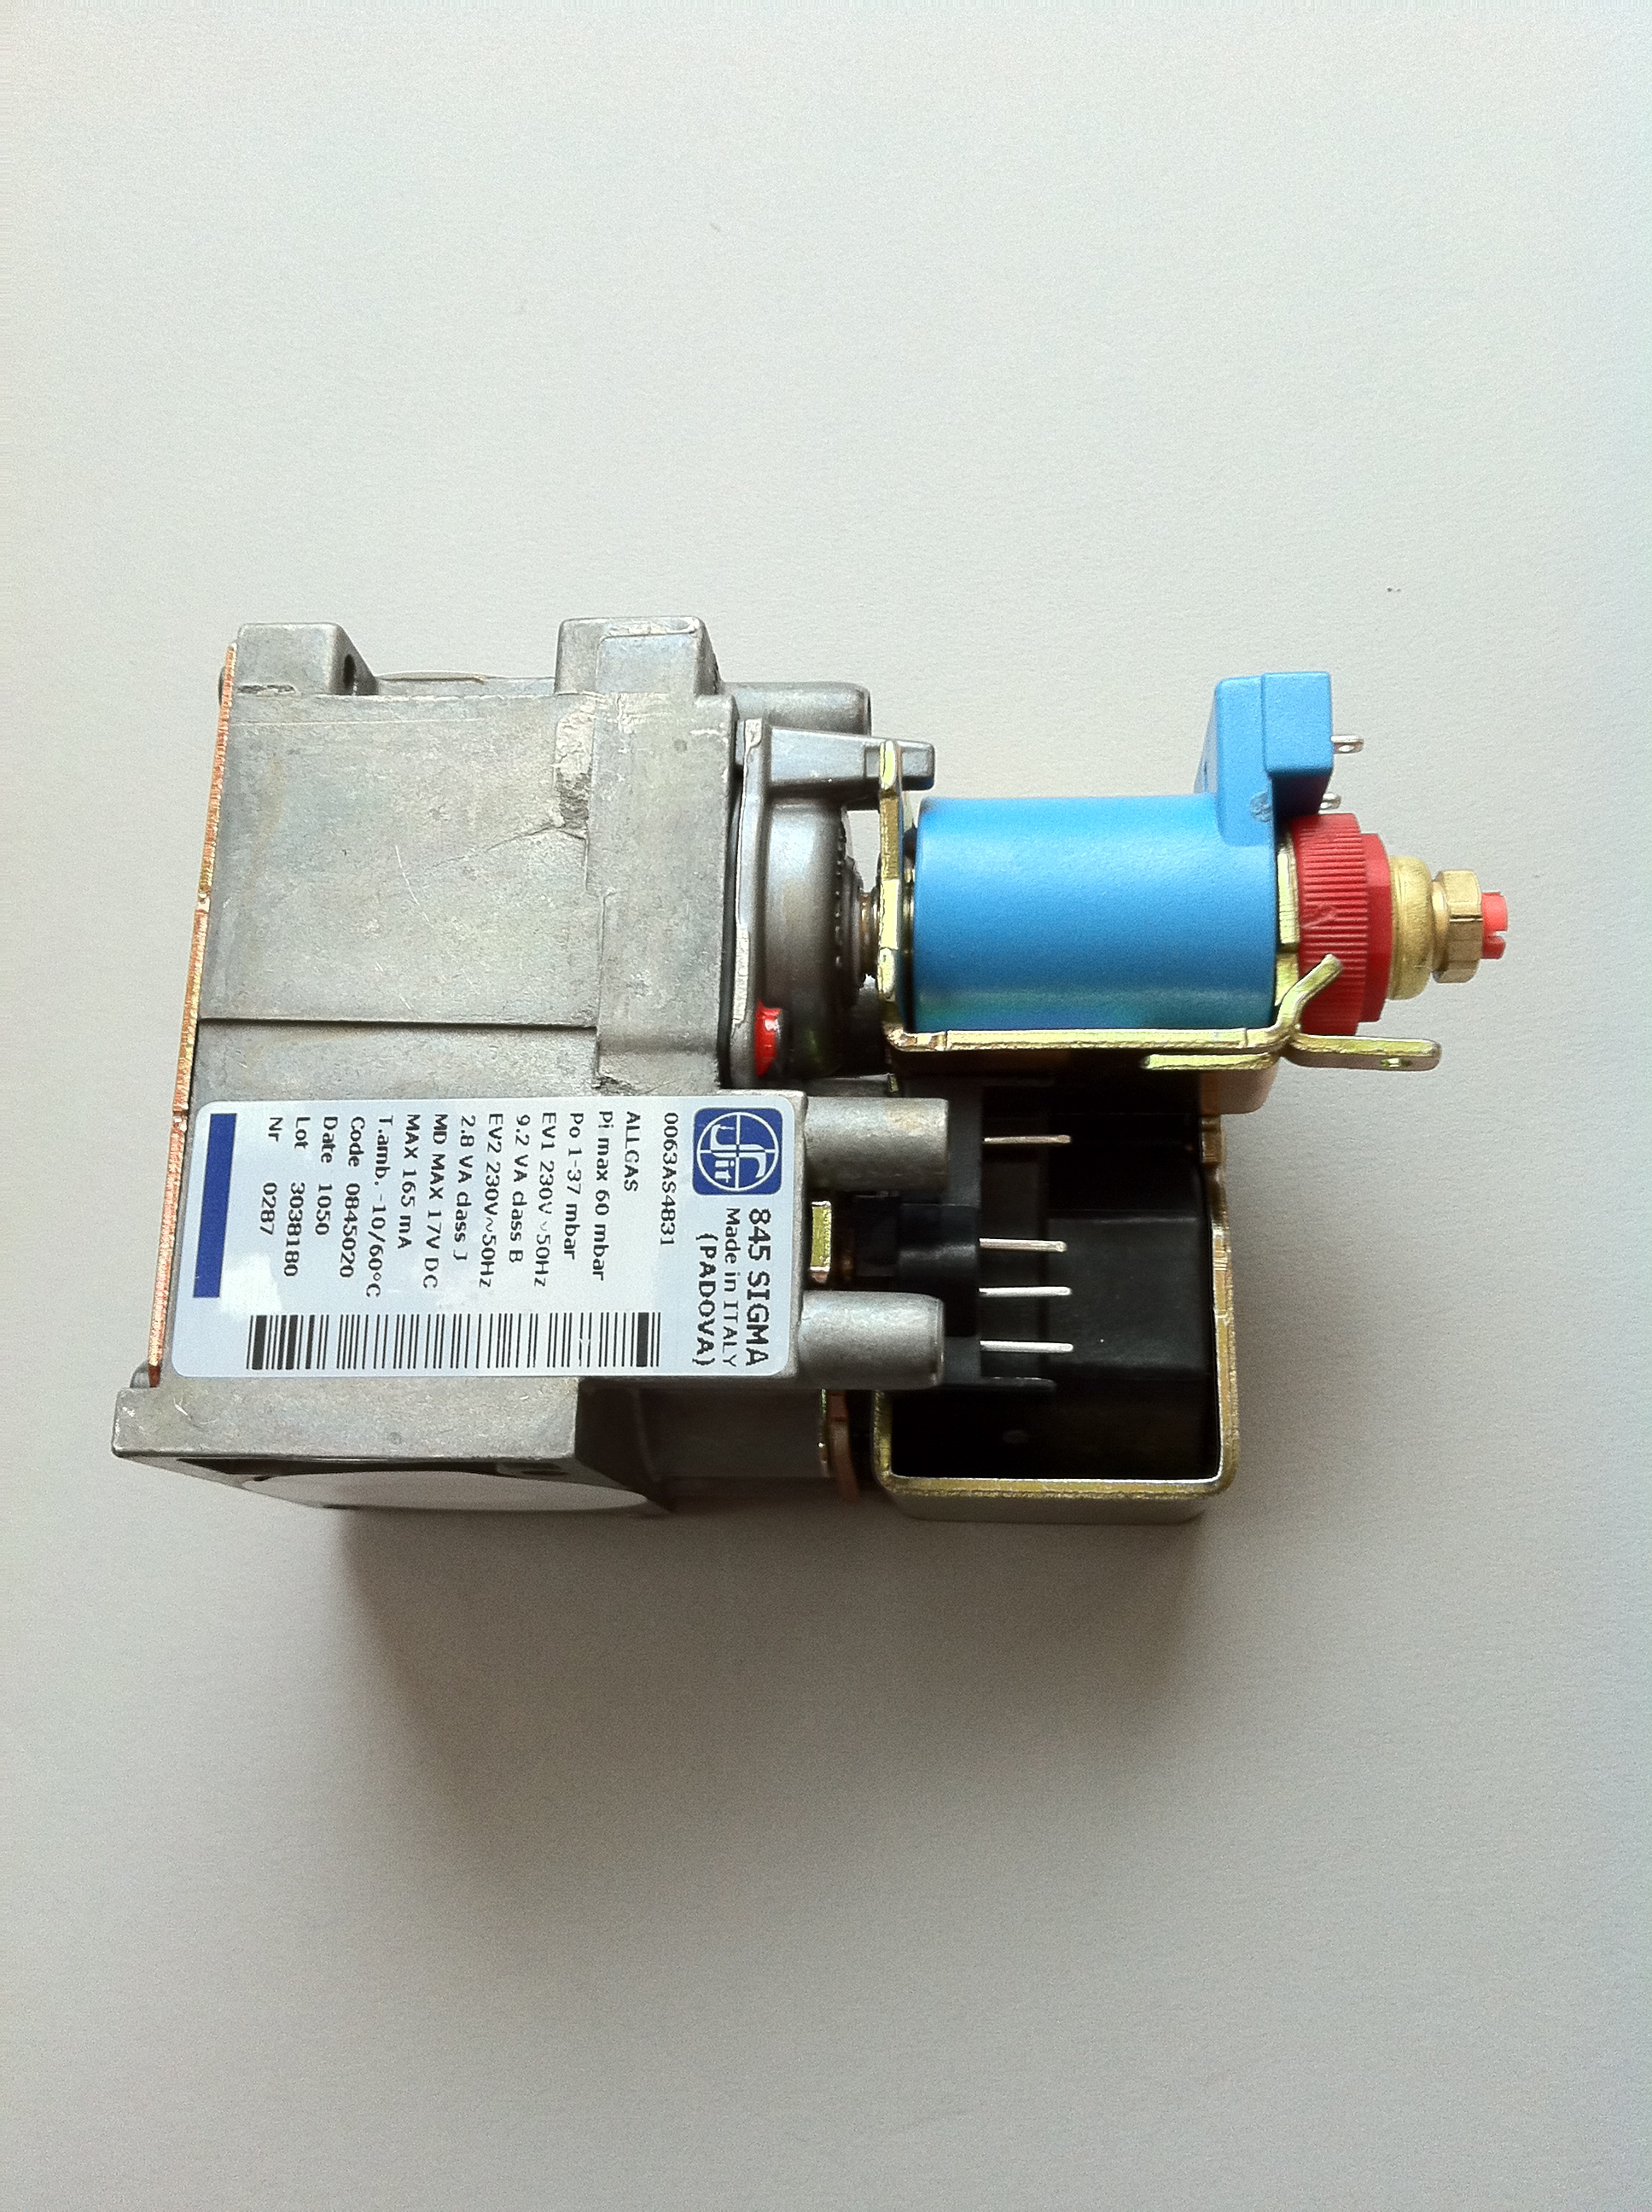 Searching For Products In Ariston Page 1 Gas Parts Boiler An 15rs 350 Watt Water Heather 65104254